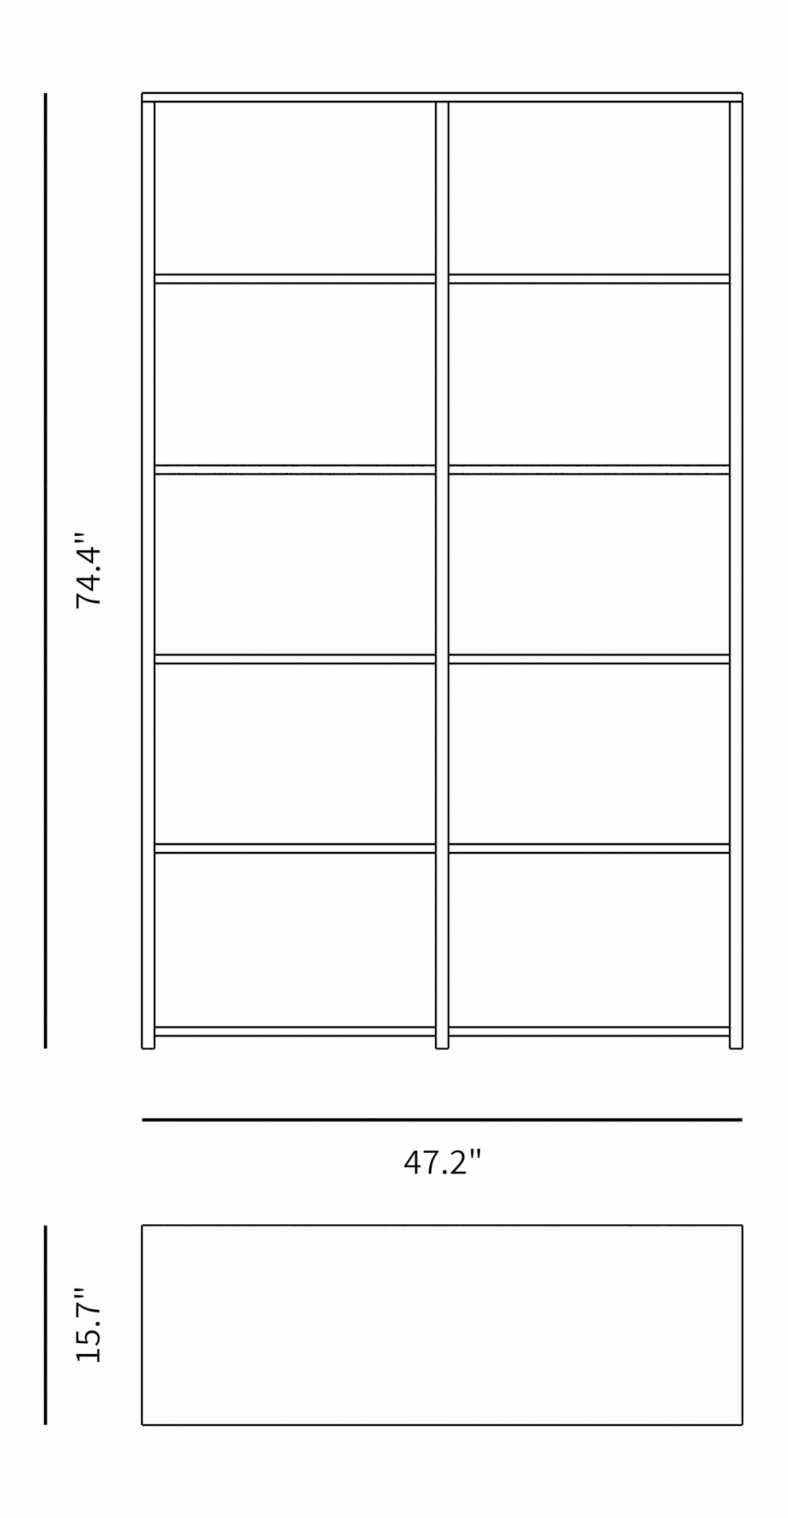 Dimensions for Hanne Display Unit